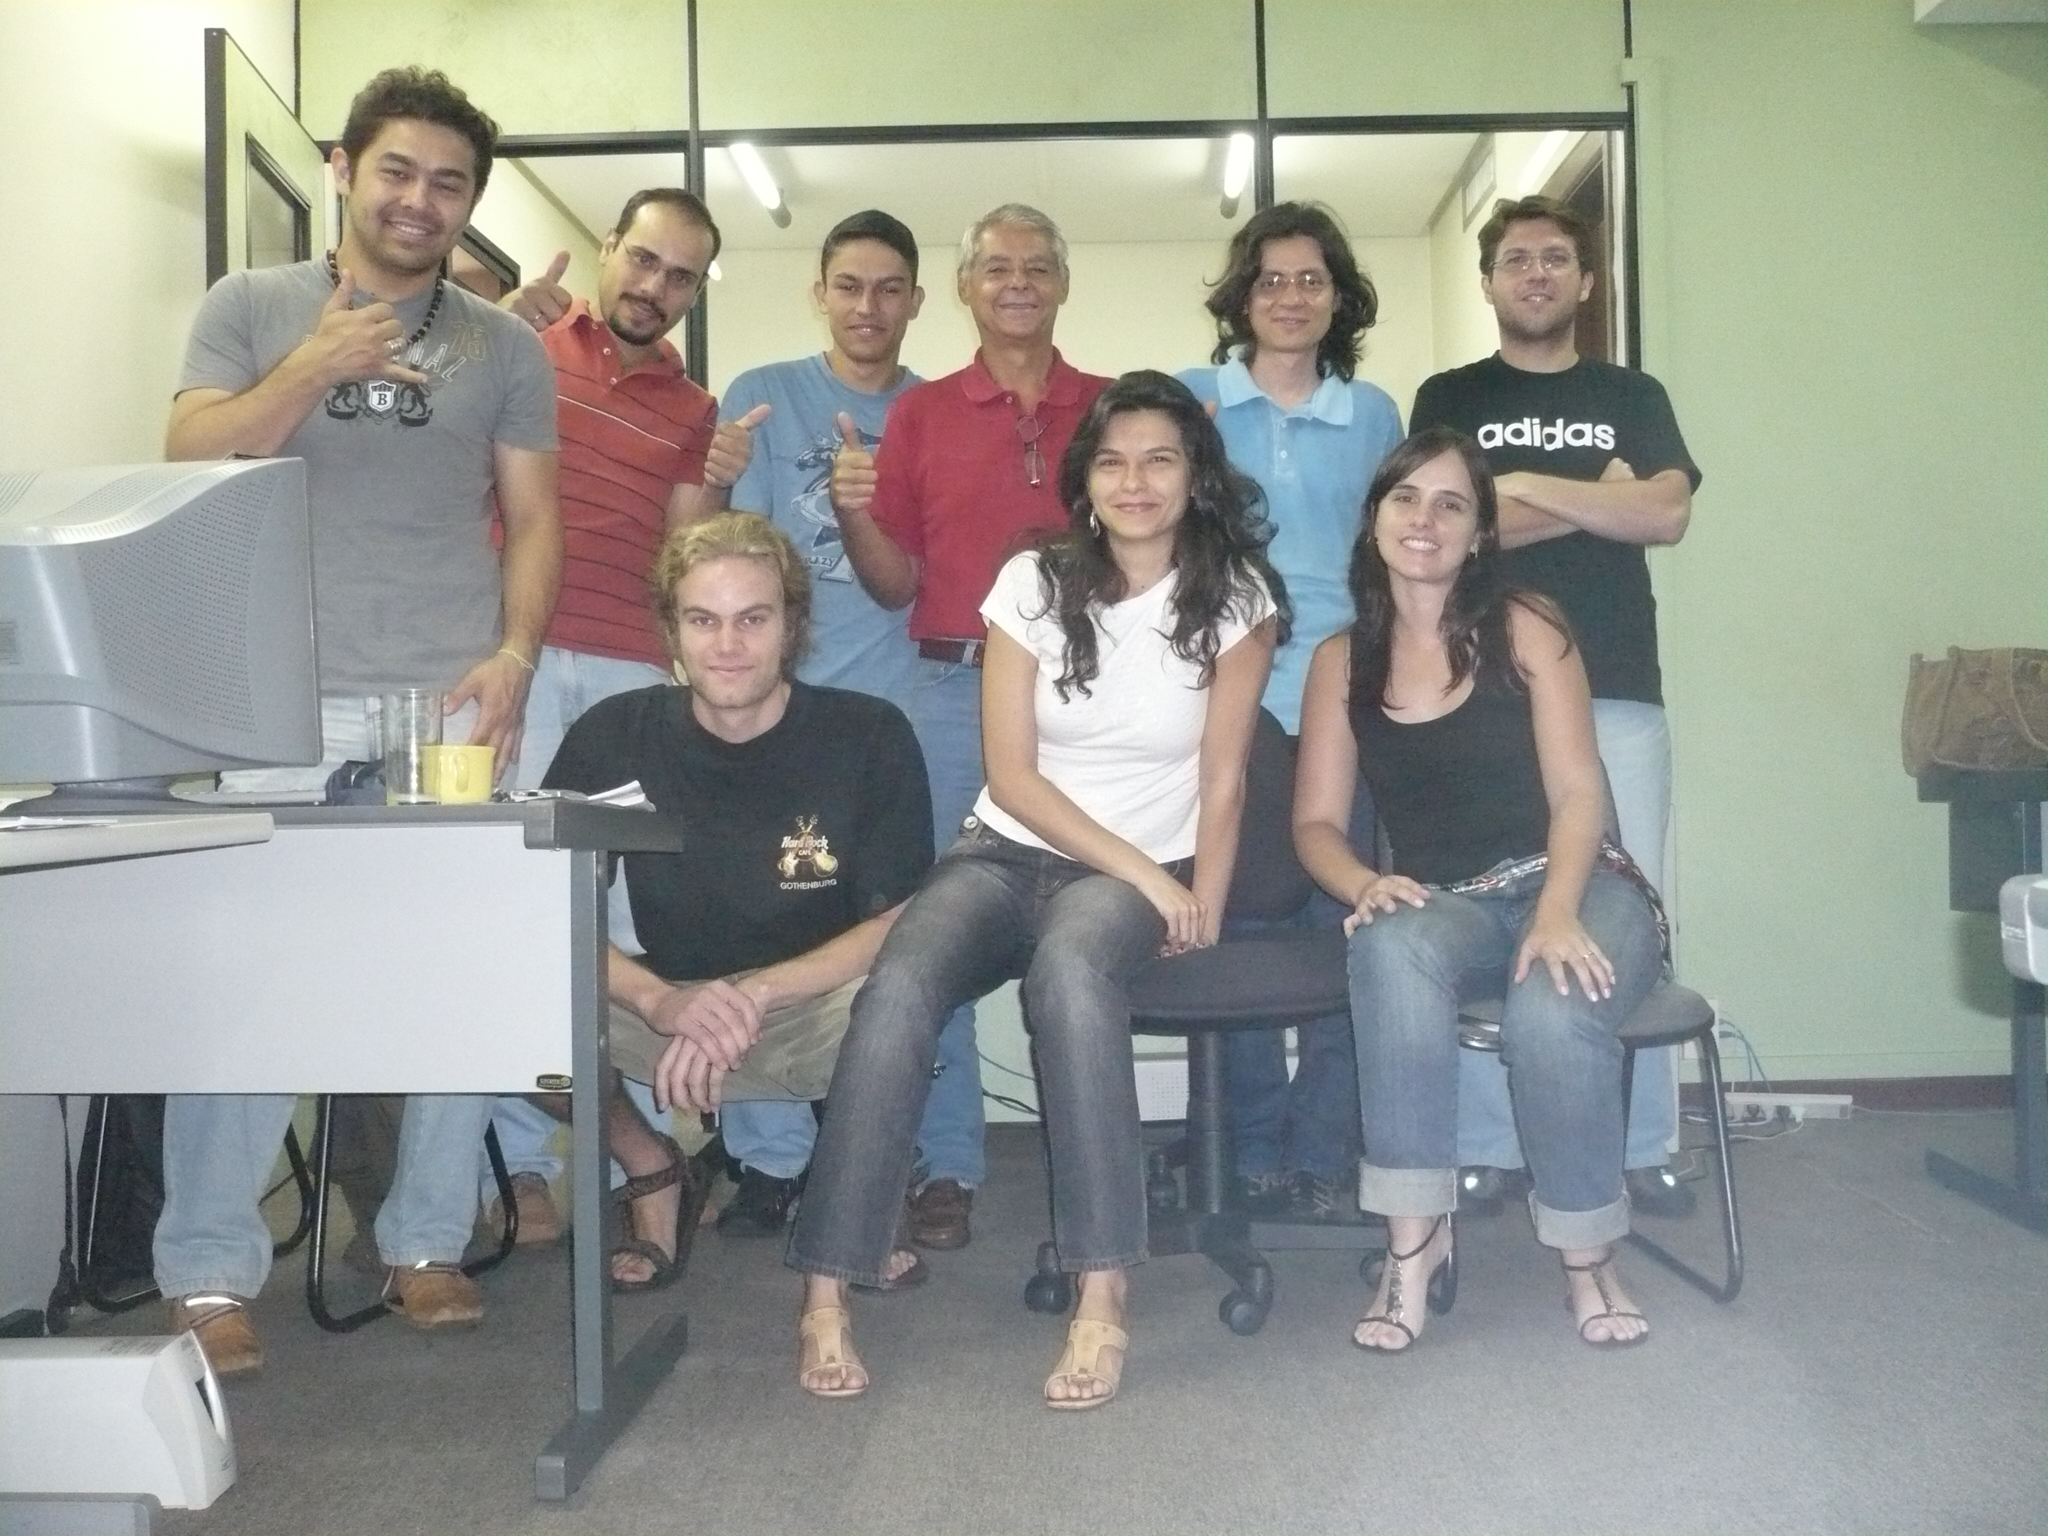 Intelinet - my company in Brazil